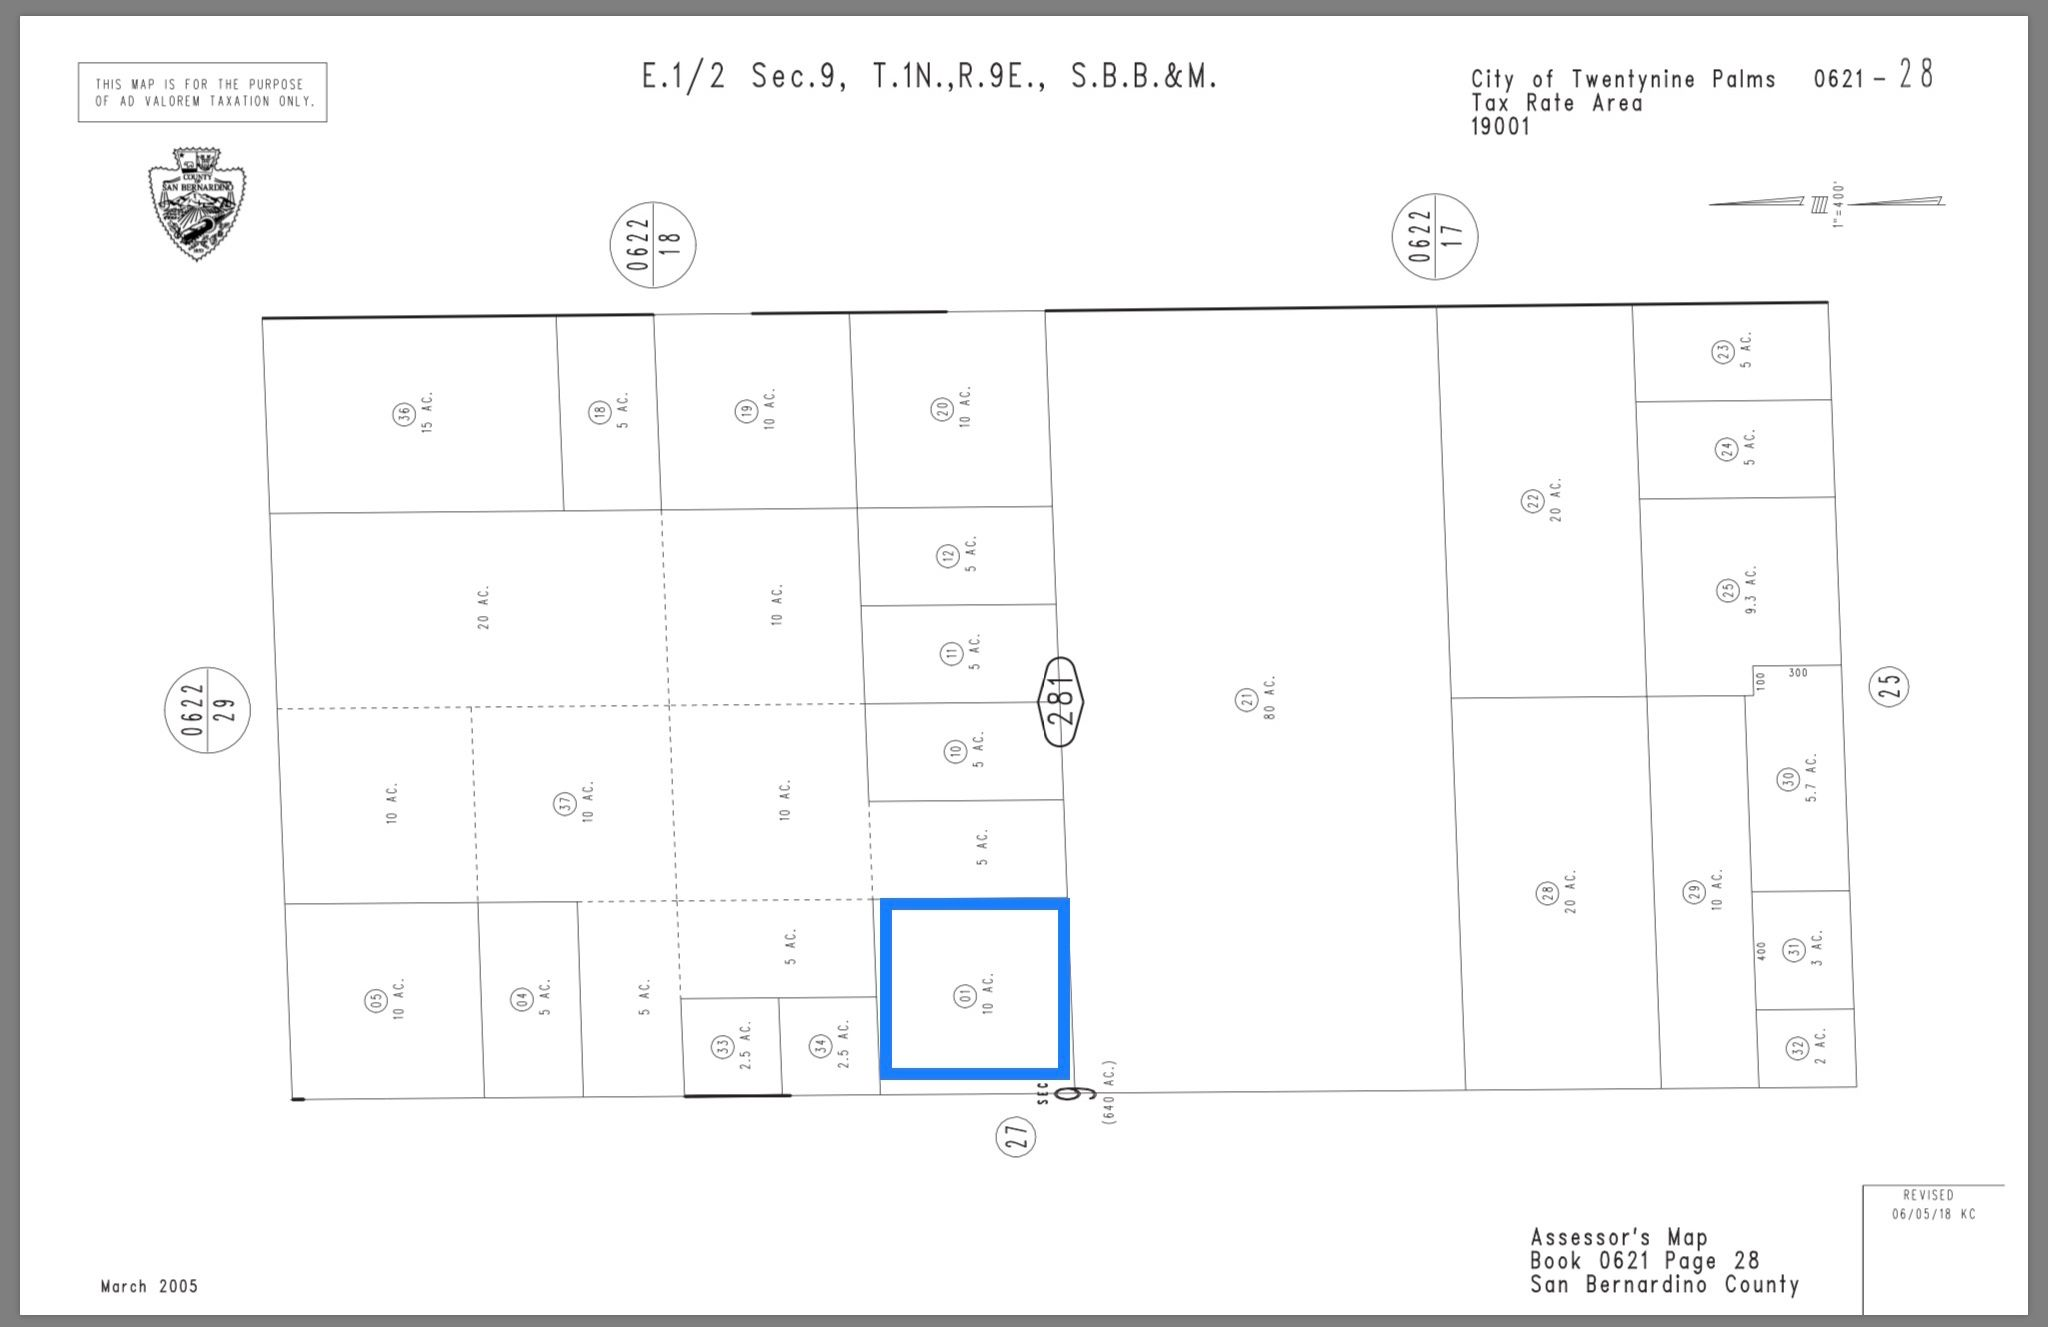 Indian Trl, Twentynine Palms, CA 92277 - Lot/Land - 3 Photos | Trulia